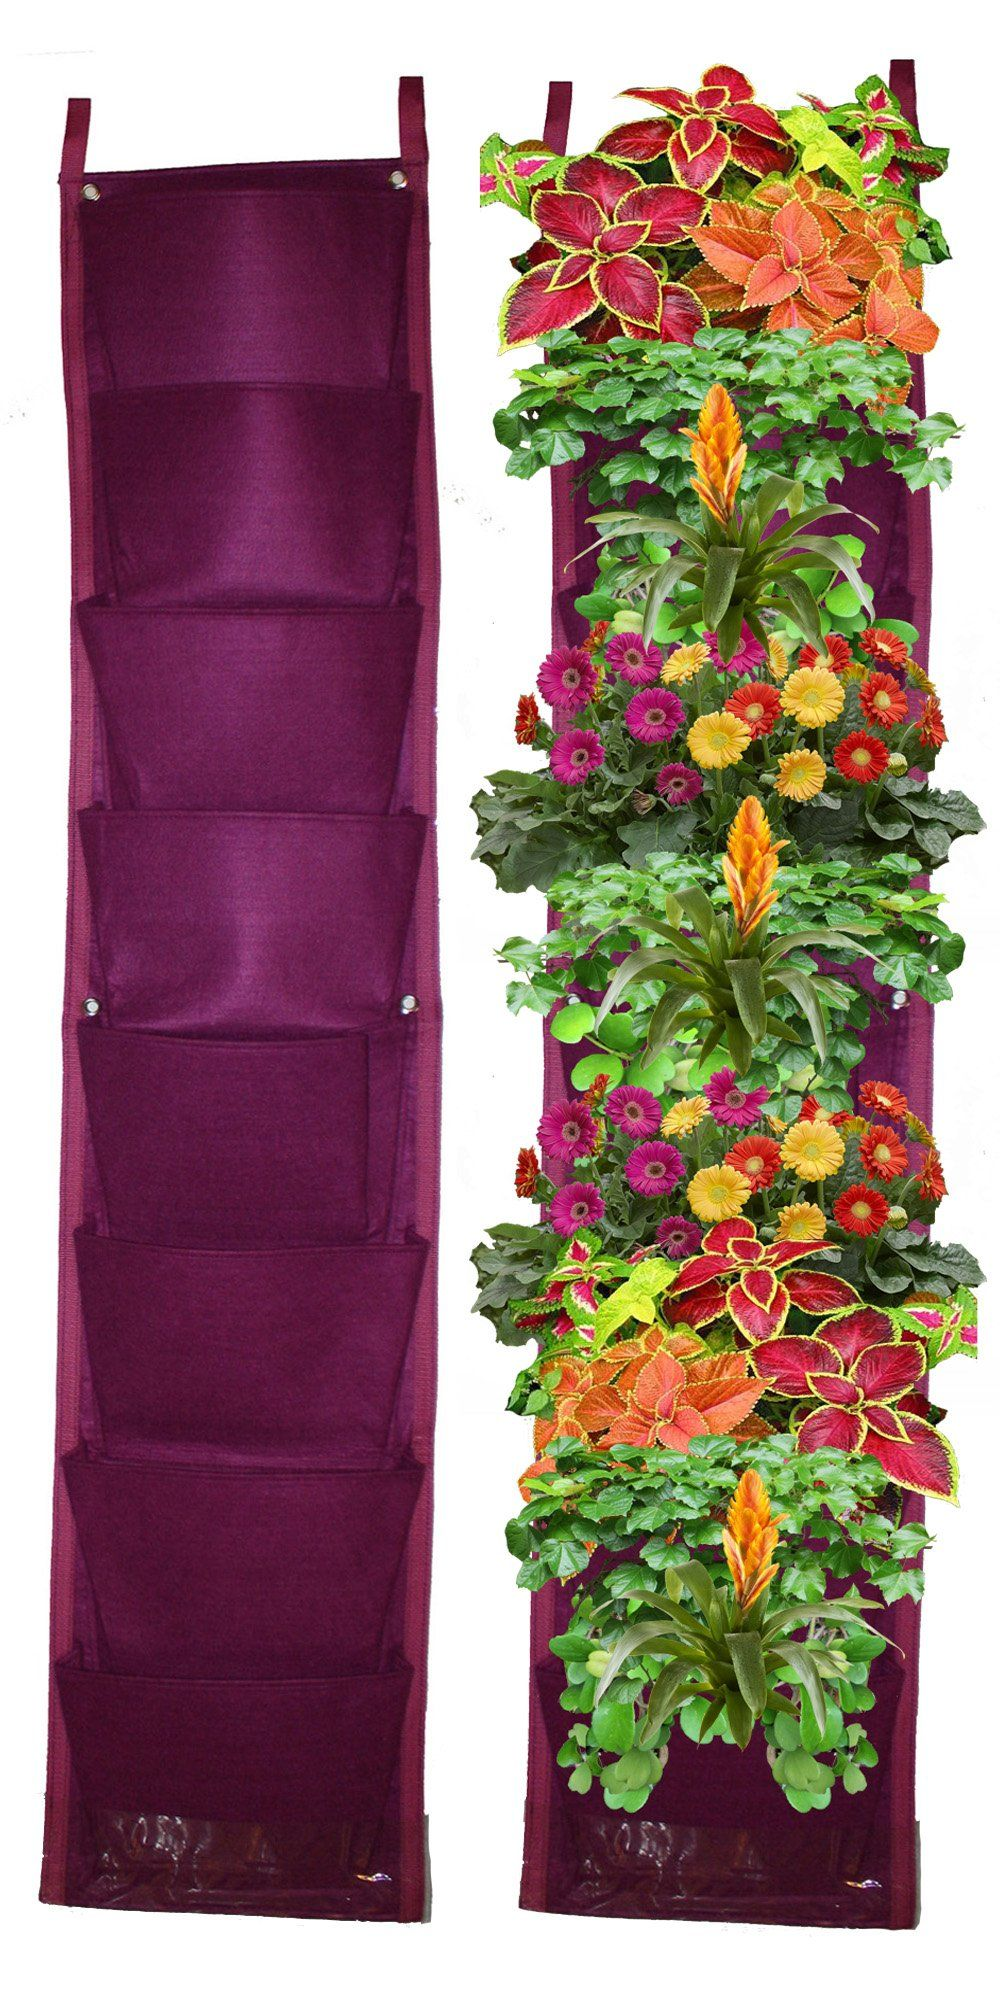 garden tiers or amazon dp balcony as room divider patio vertical stand on a planter use outdoors gardening display plant metal com plants planters tall indoor